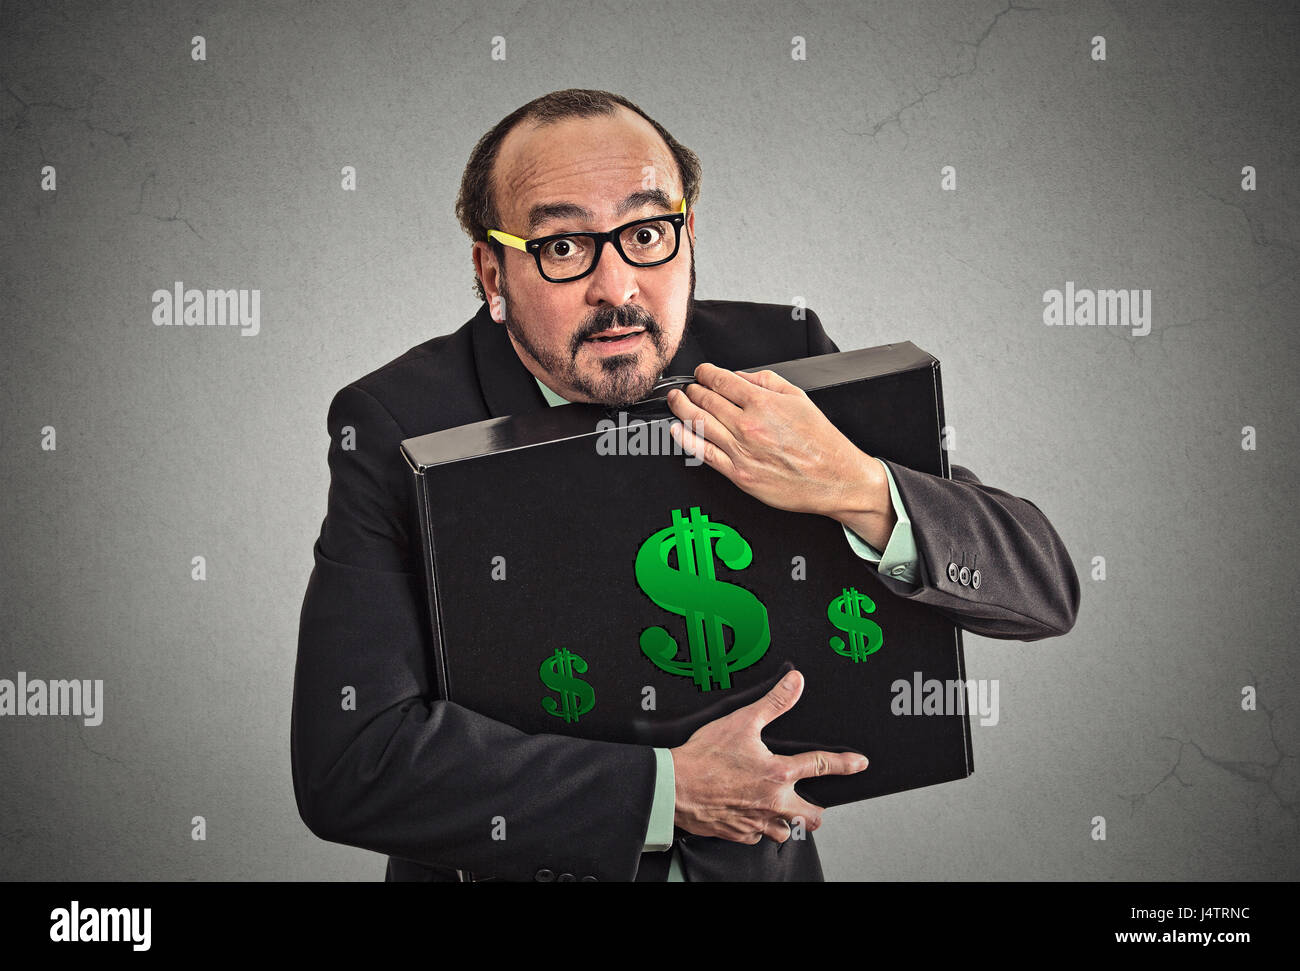 Money greed wealth security. Wealthy business man in suit holding holding hugging tight case full with dollars money - Stock Image